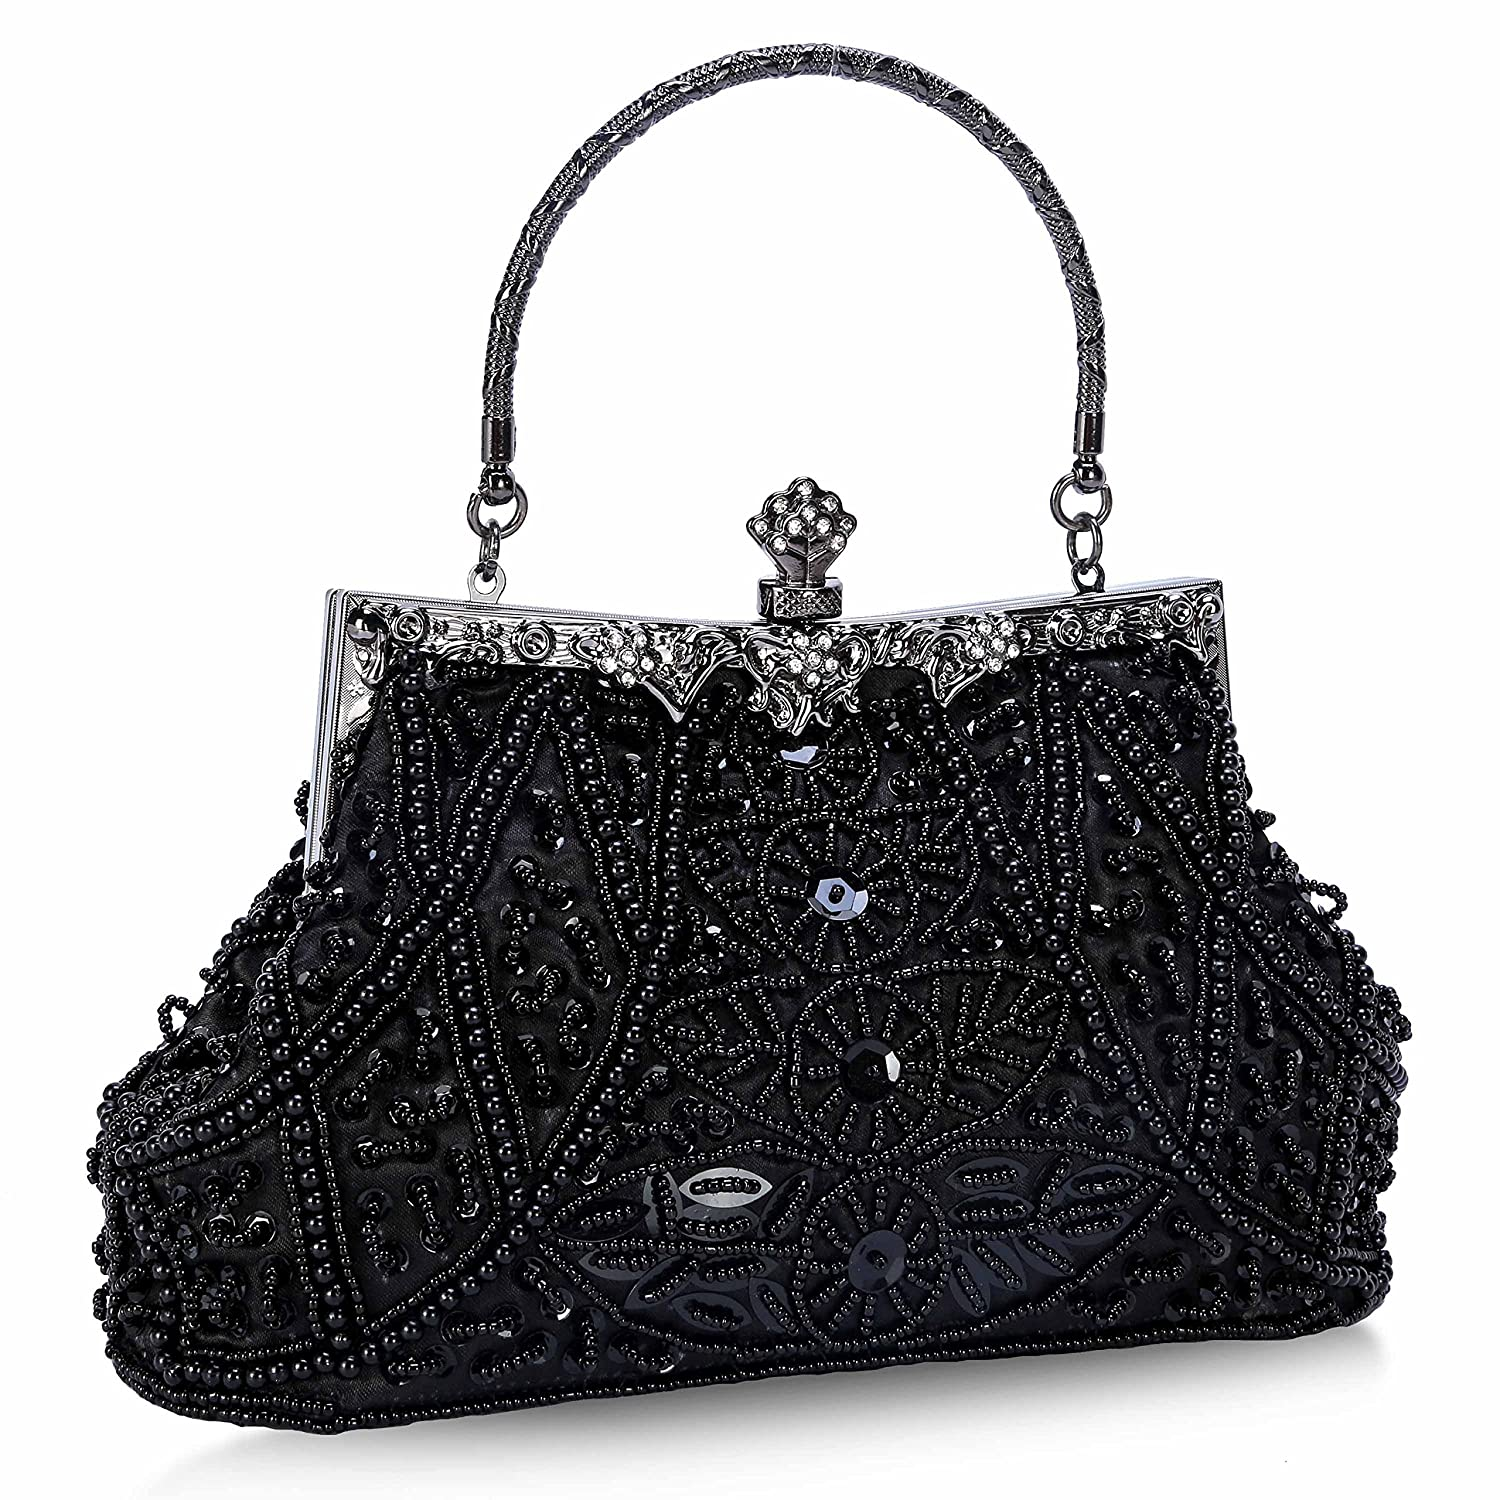 Vintage & Retro Handbags, Purses, Wallets, Bags Chichitop Womens Bead Sequined Vintage Evening Bag Wedding Party Handbag Clutch Purse $24.99 AT vintagedancer.com